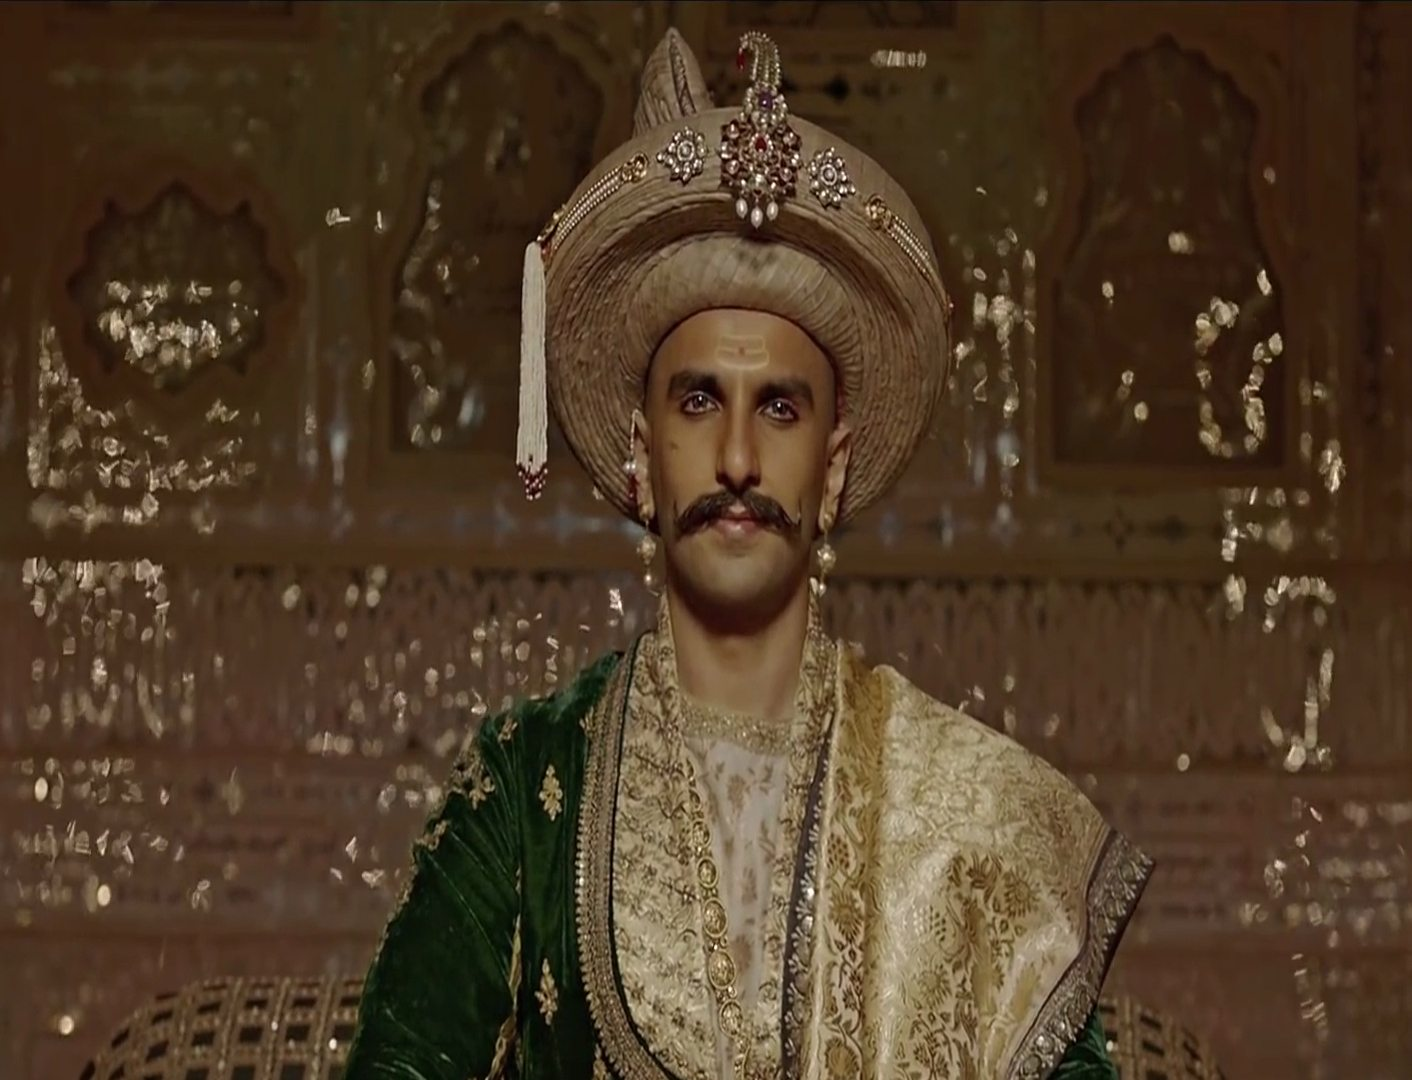 new_look_of_actor_ranveer_singh_in_hindi_picture_film_bajirao_mastani